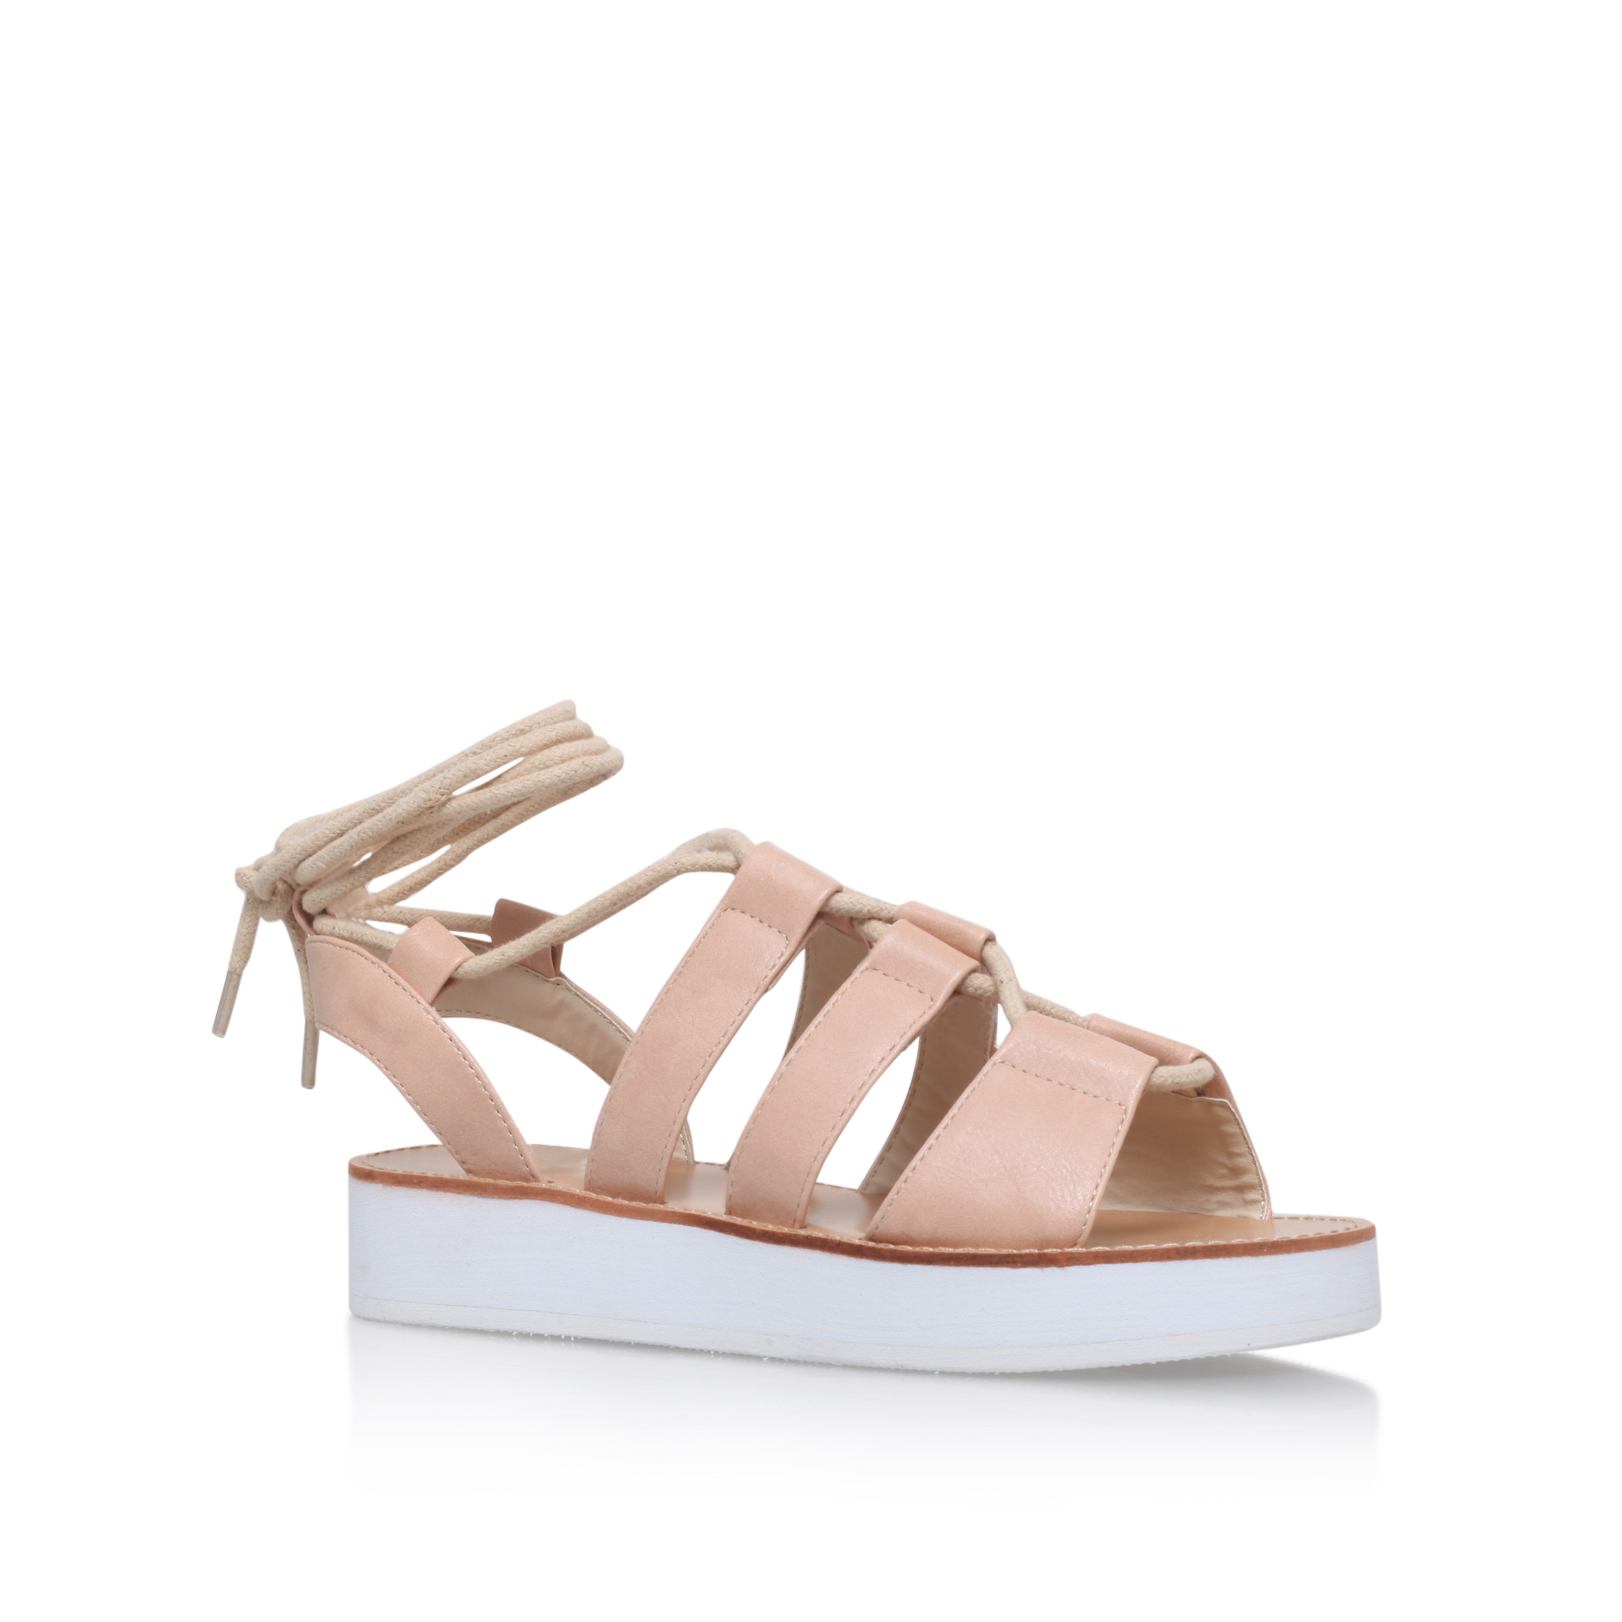 FLATFORM LACE UP SANDAL